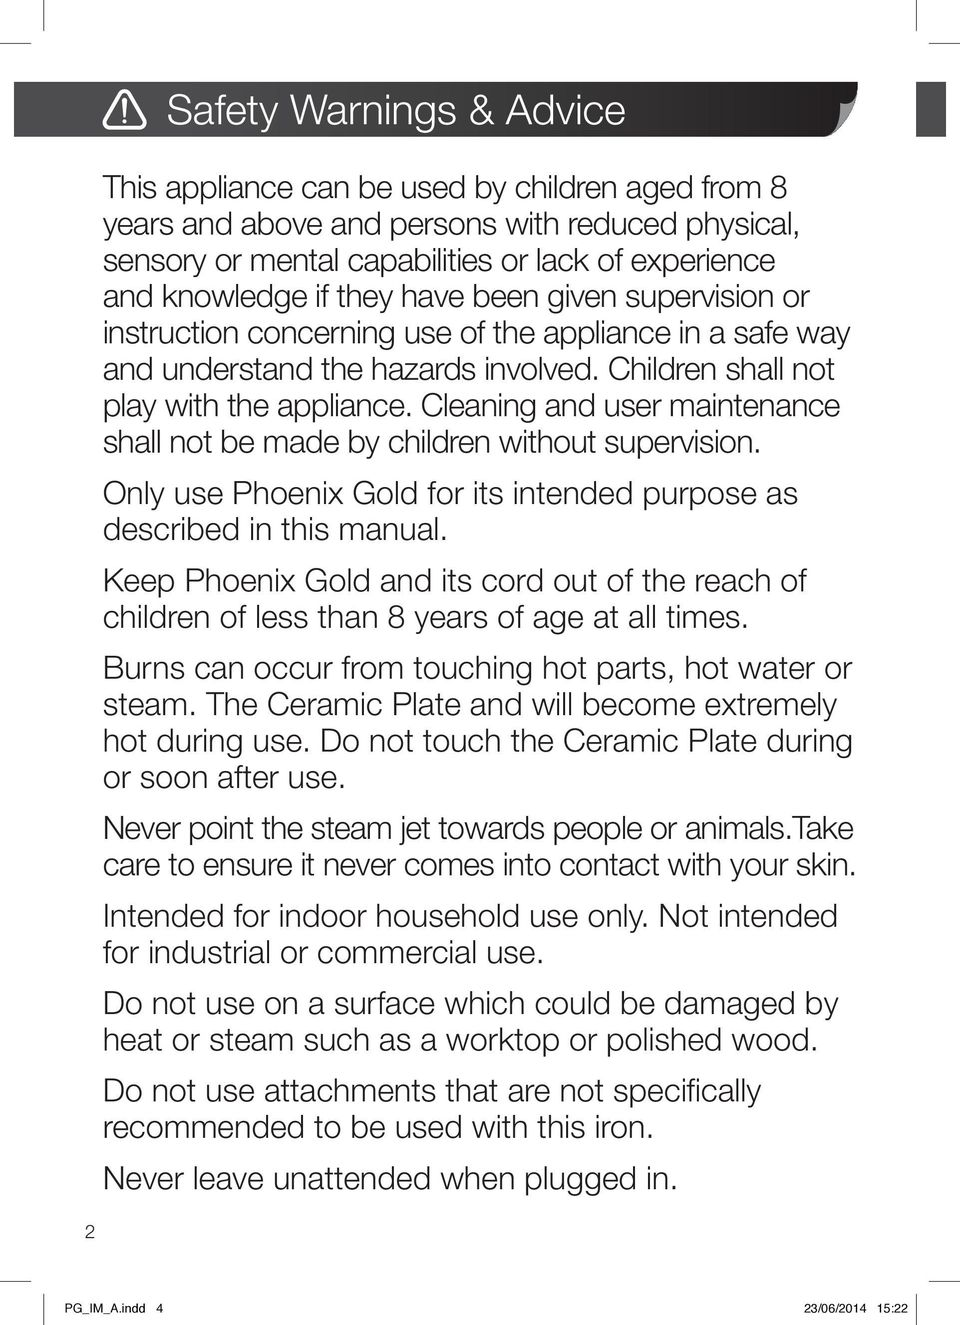 Cleaning and user maintenance shall not be made by children without supervision. Only use Phoenix Gold for its intended purpose as described in this manual.